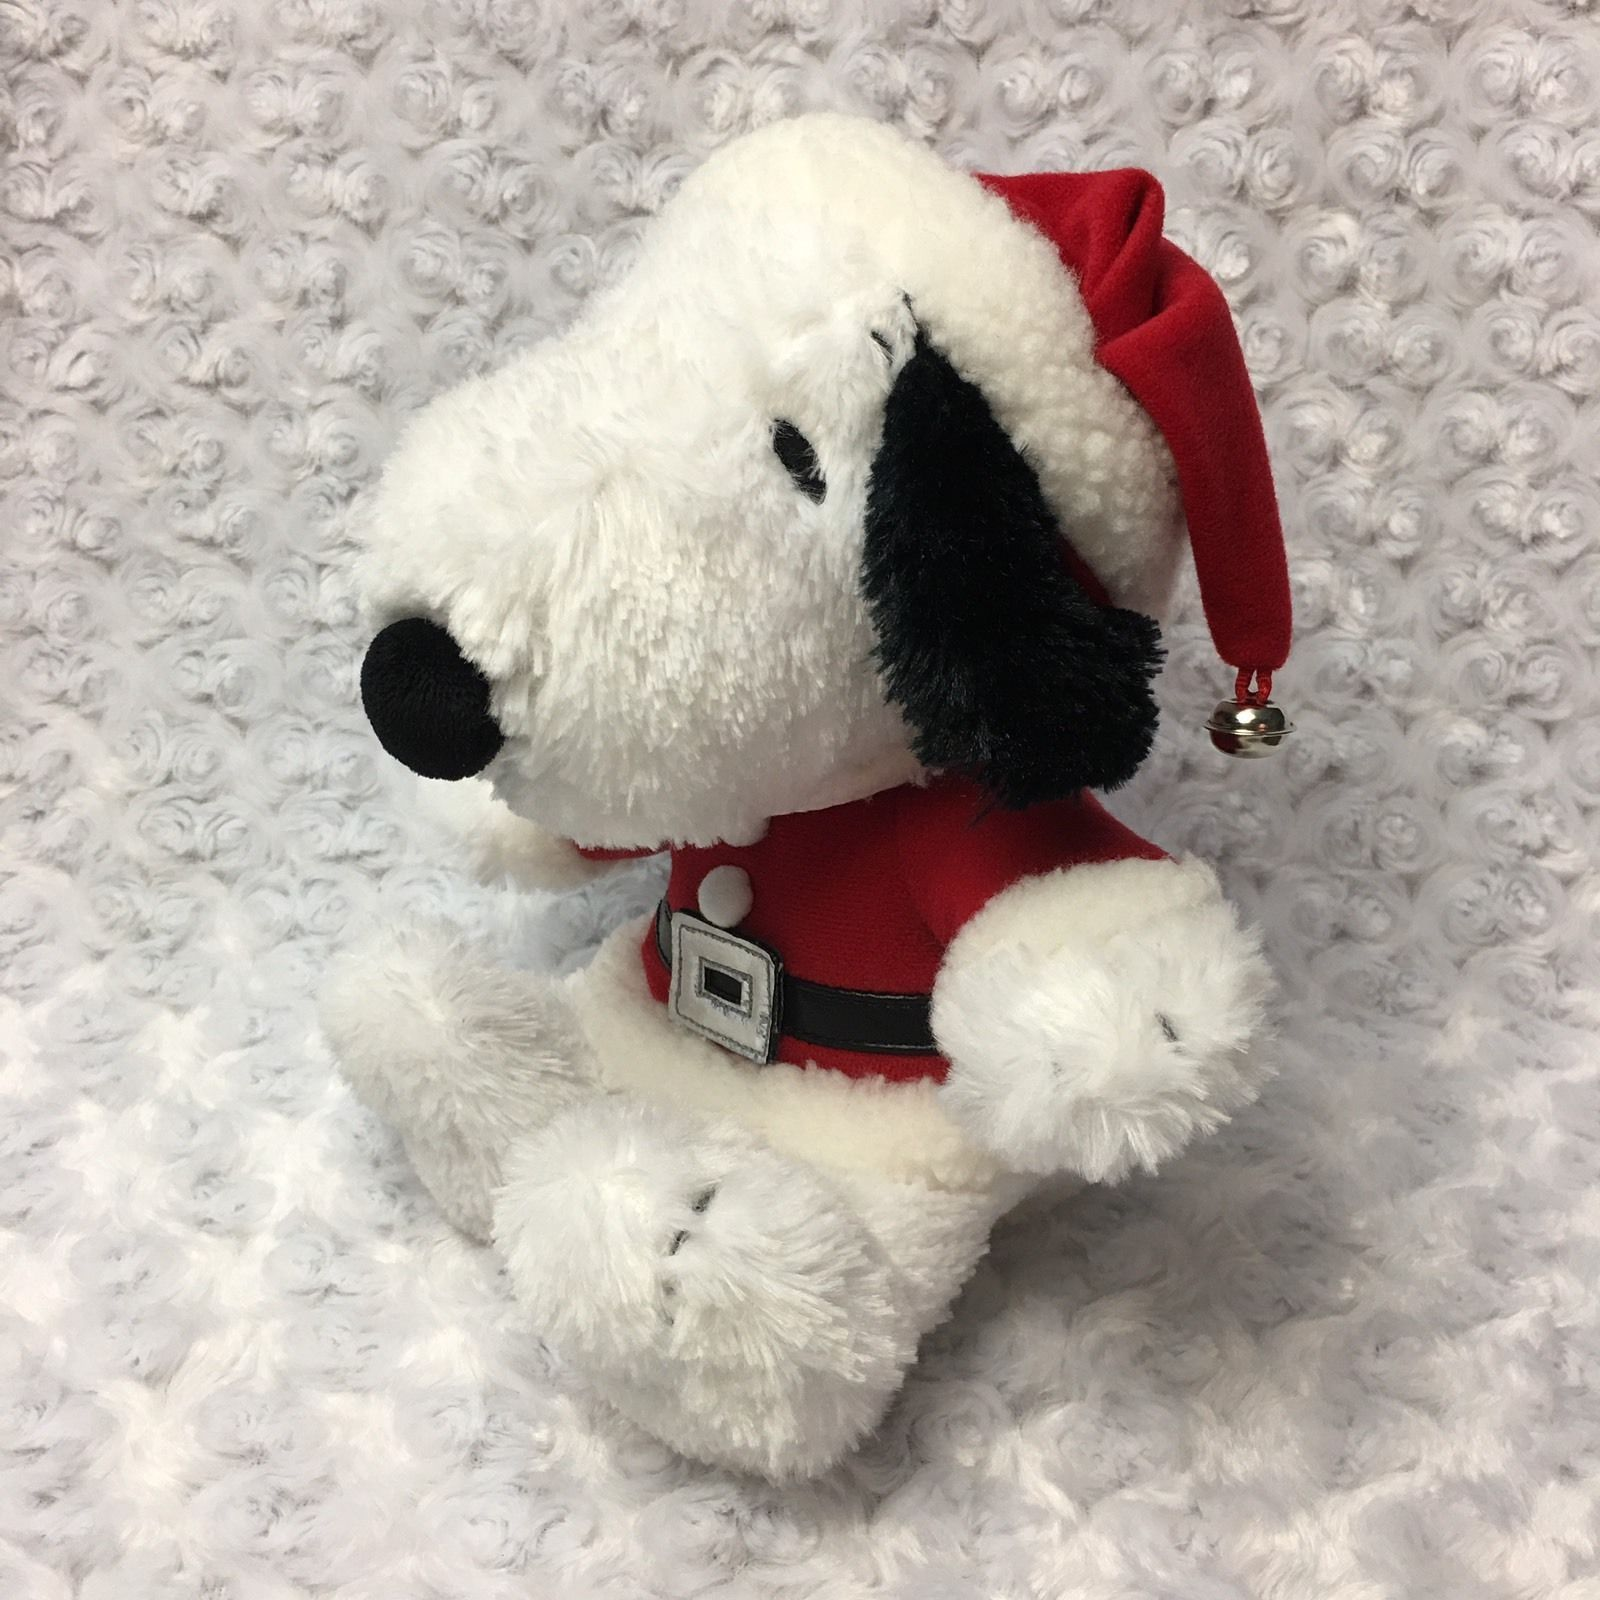 Snoopy Peanuts Hallmark Medium Christmas Holiday Stuffed Plush as Santa Bell Hat image 1